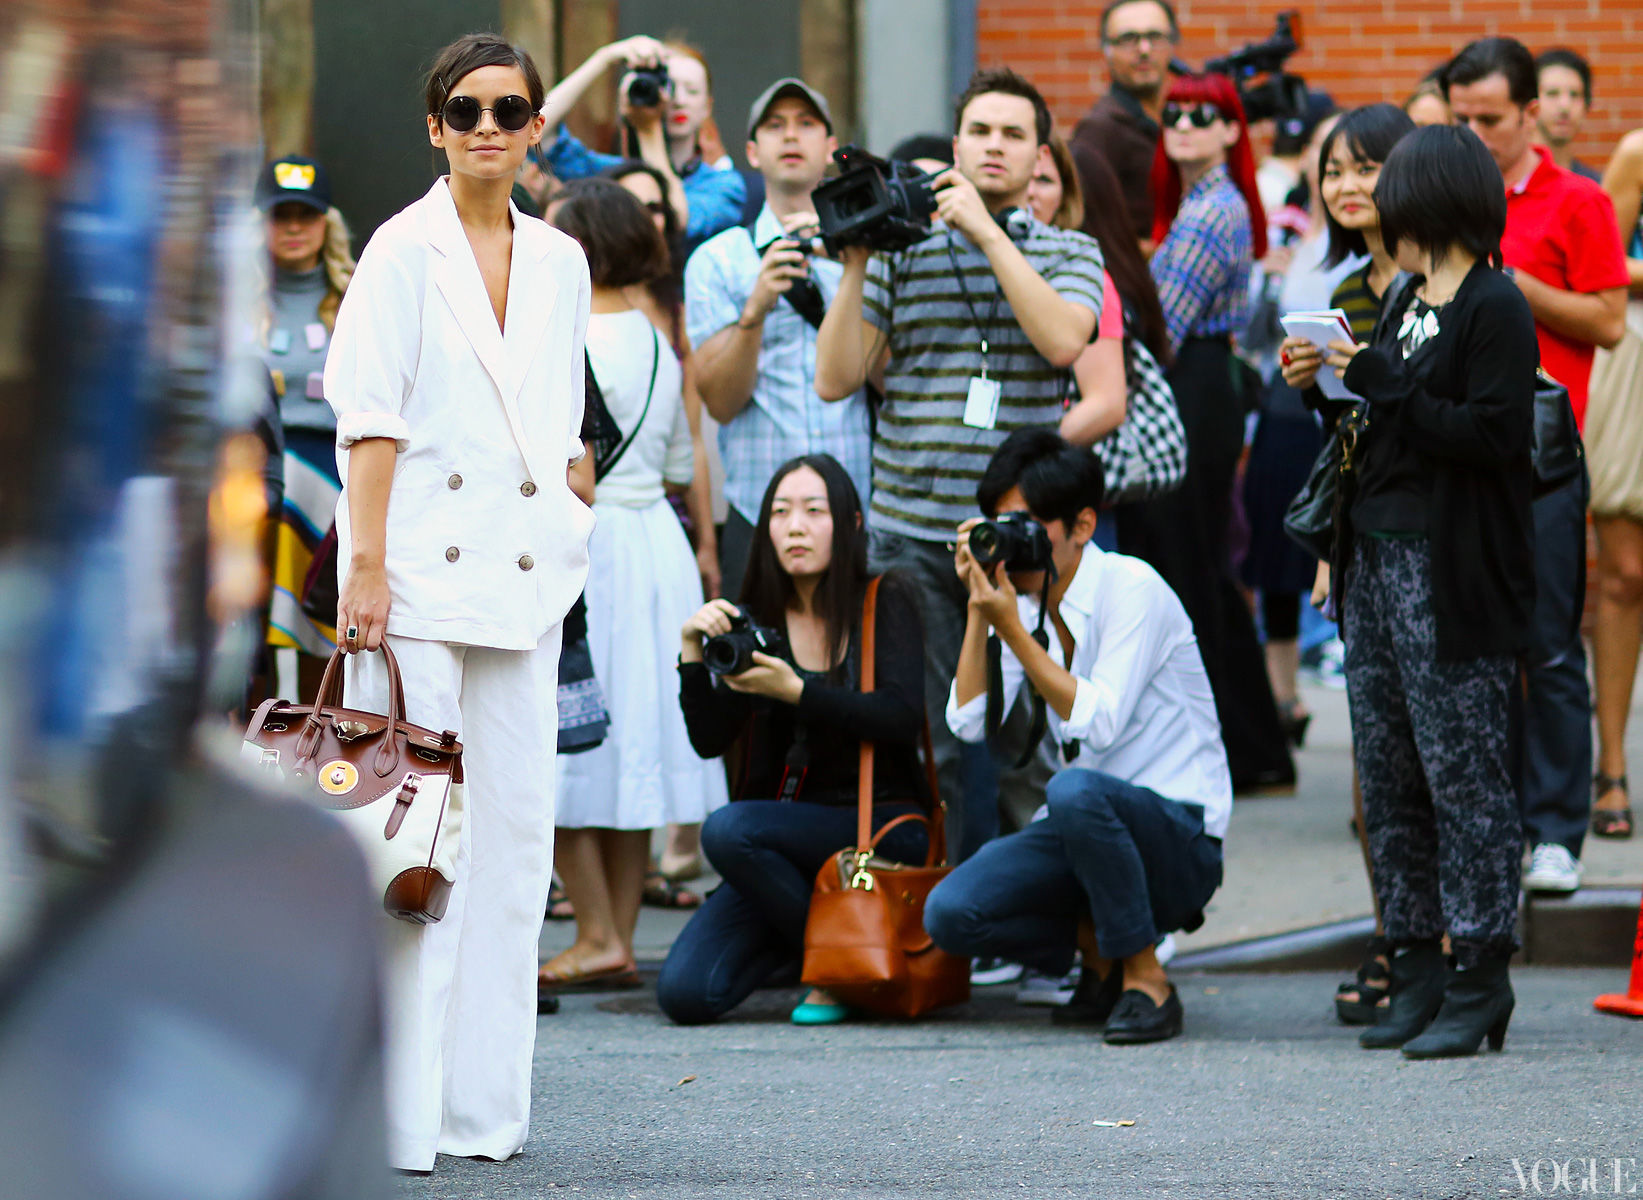 miroslava-duma-white-suit-ralph-lauren-bag-new-york-fashion-week-spring-2013-street-style (1)